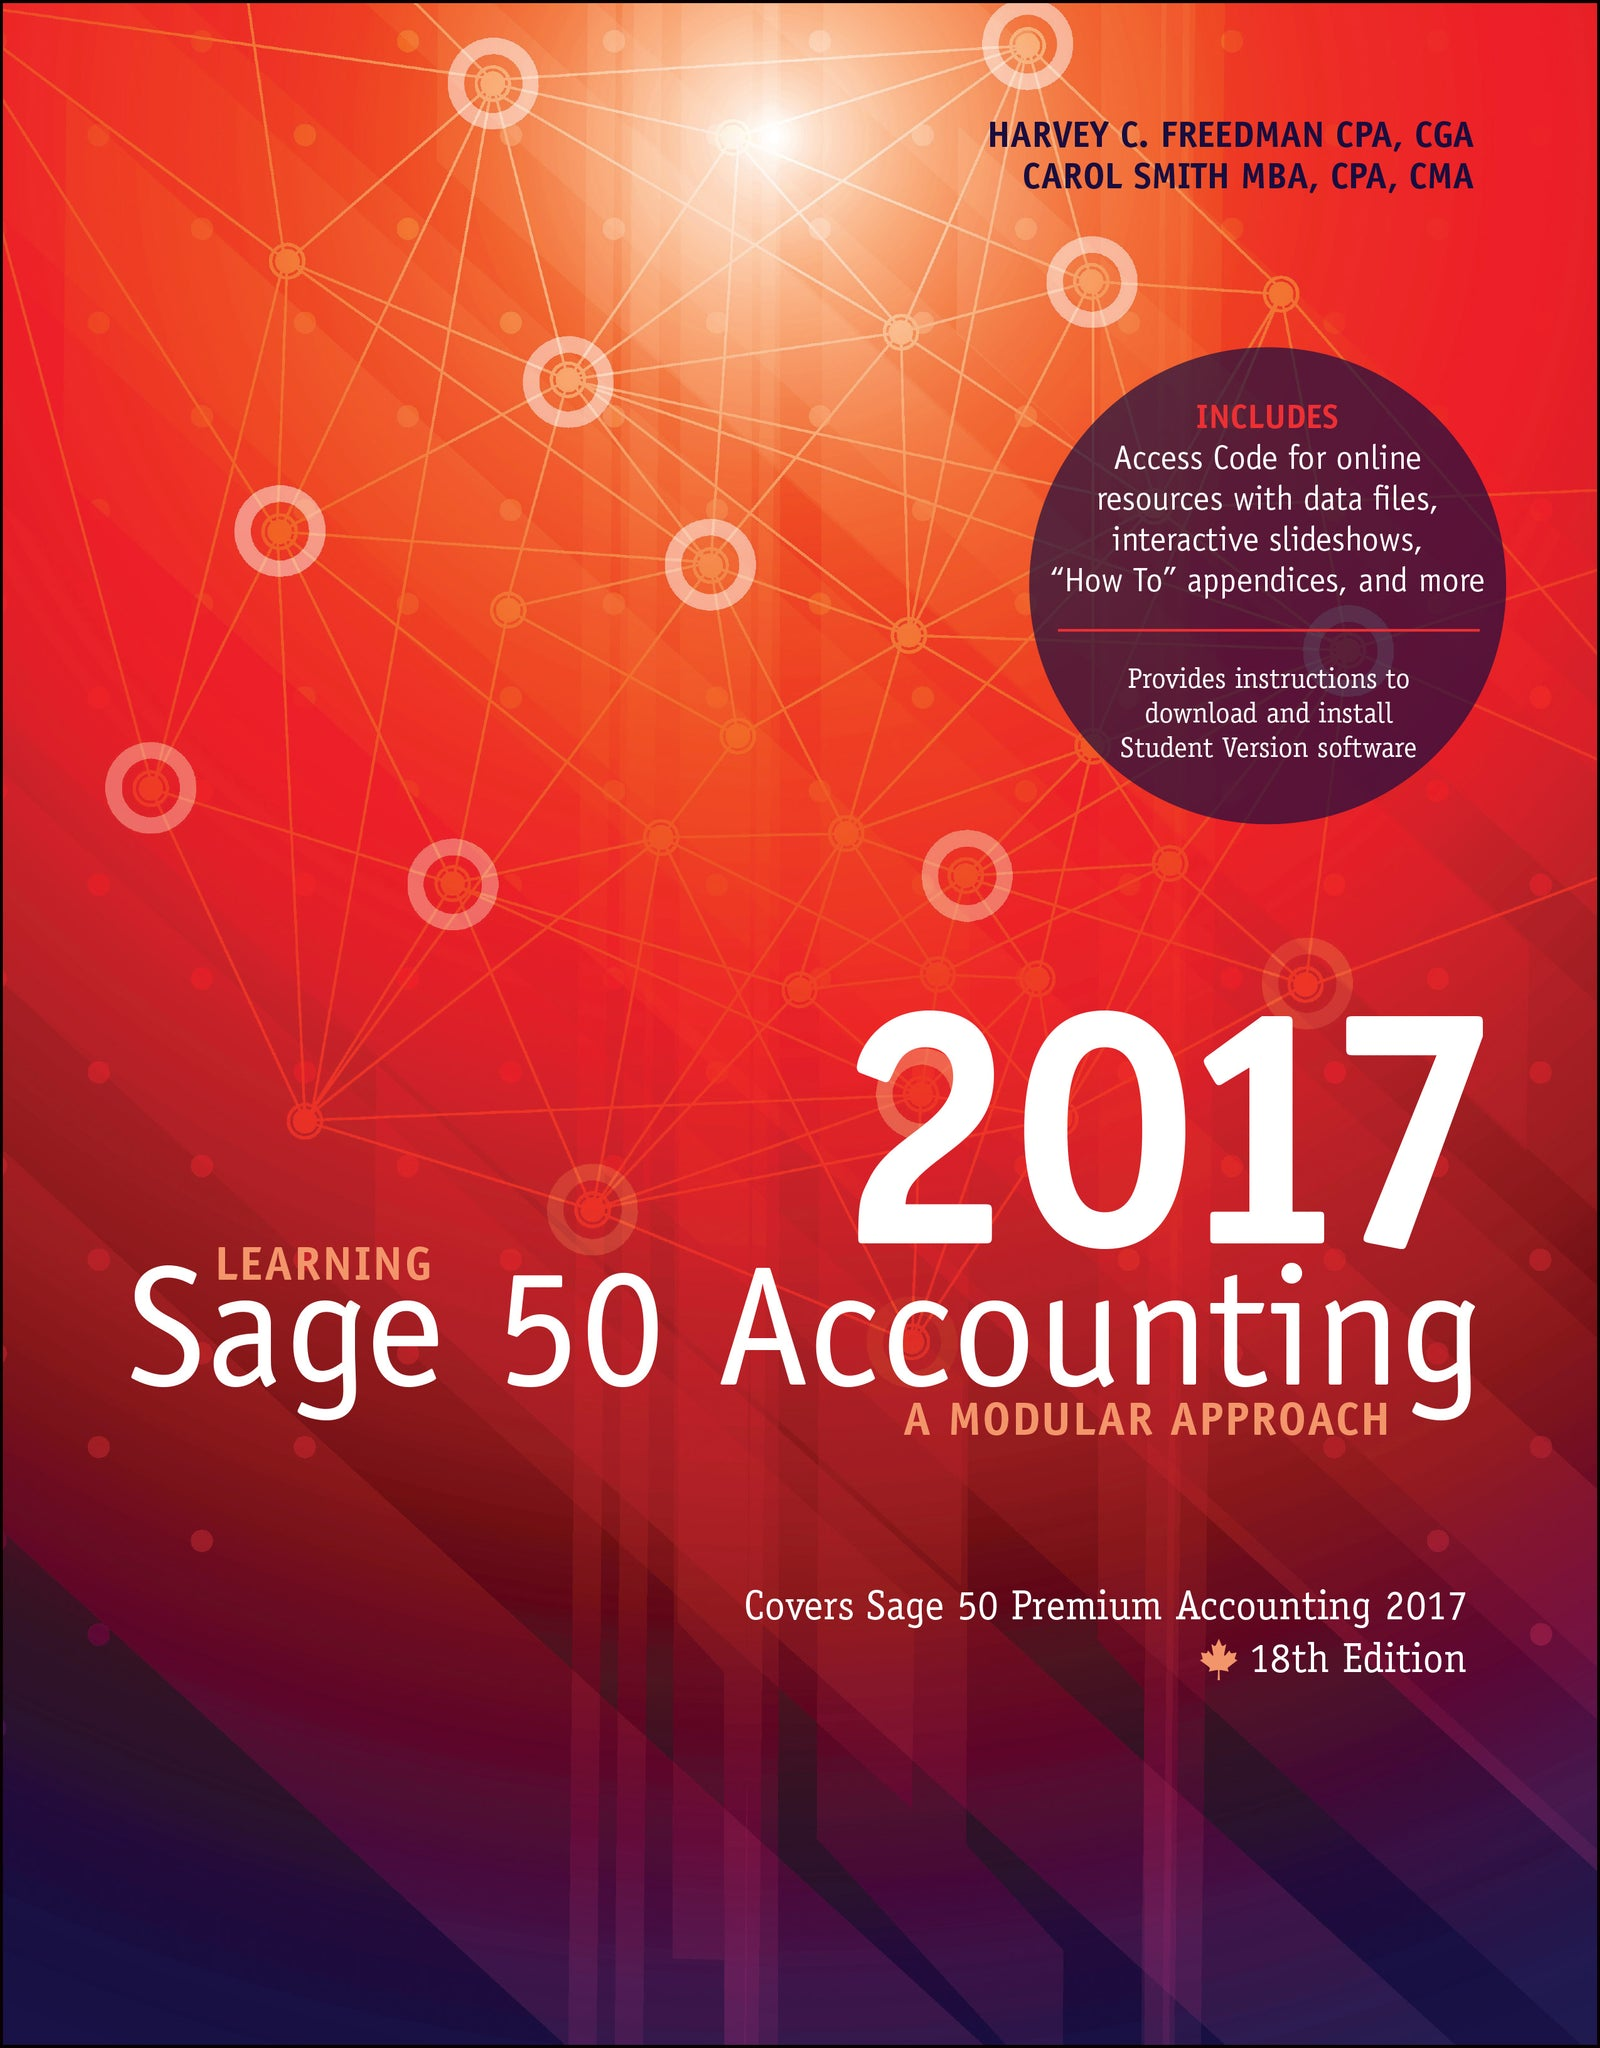 Learning Sage 50 Accounting 2017: A Modular Approach